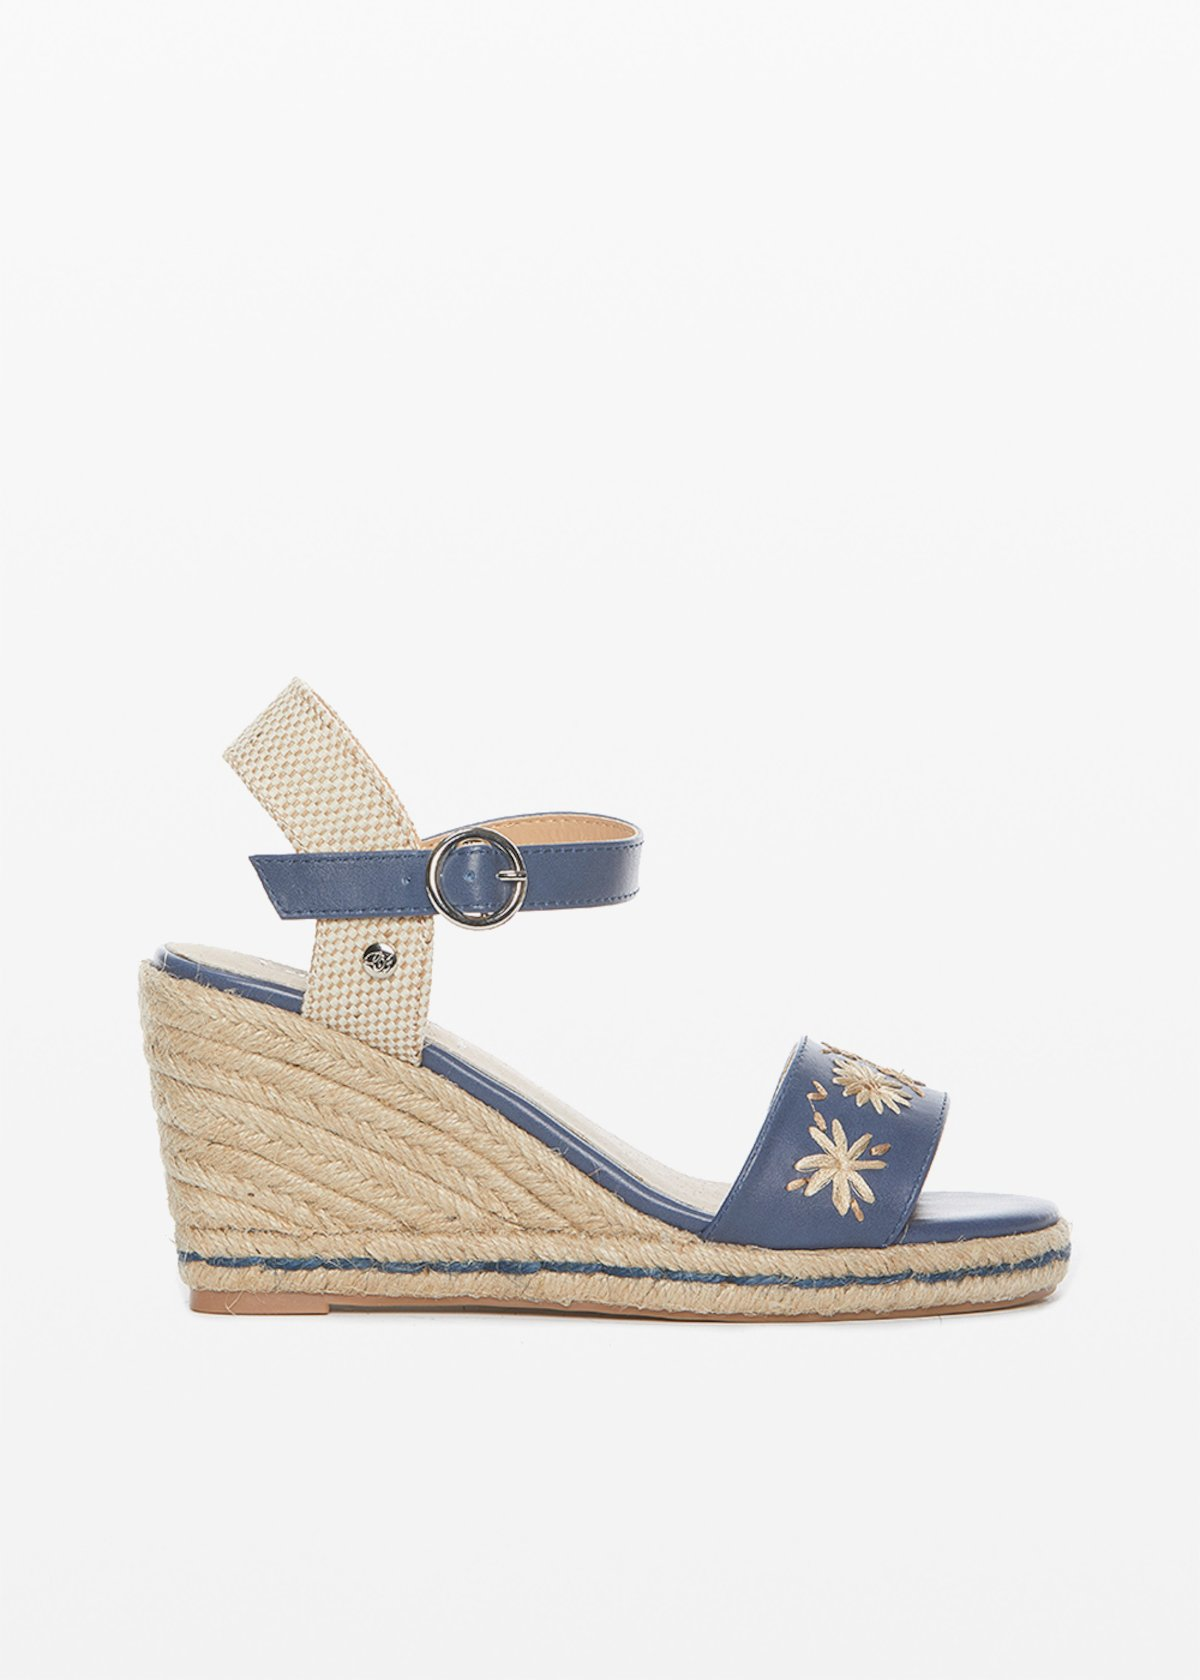 Faux leather and straw Saint sandals with flowers detail - Blue - Woman - Category image